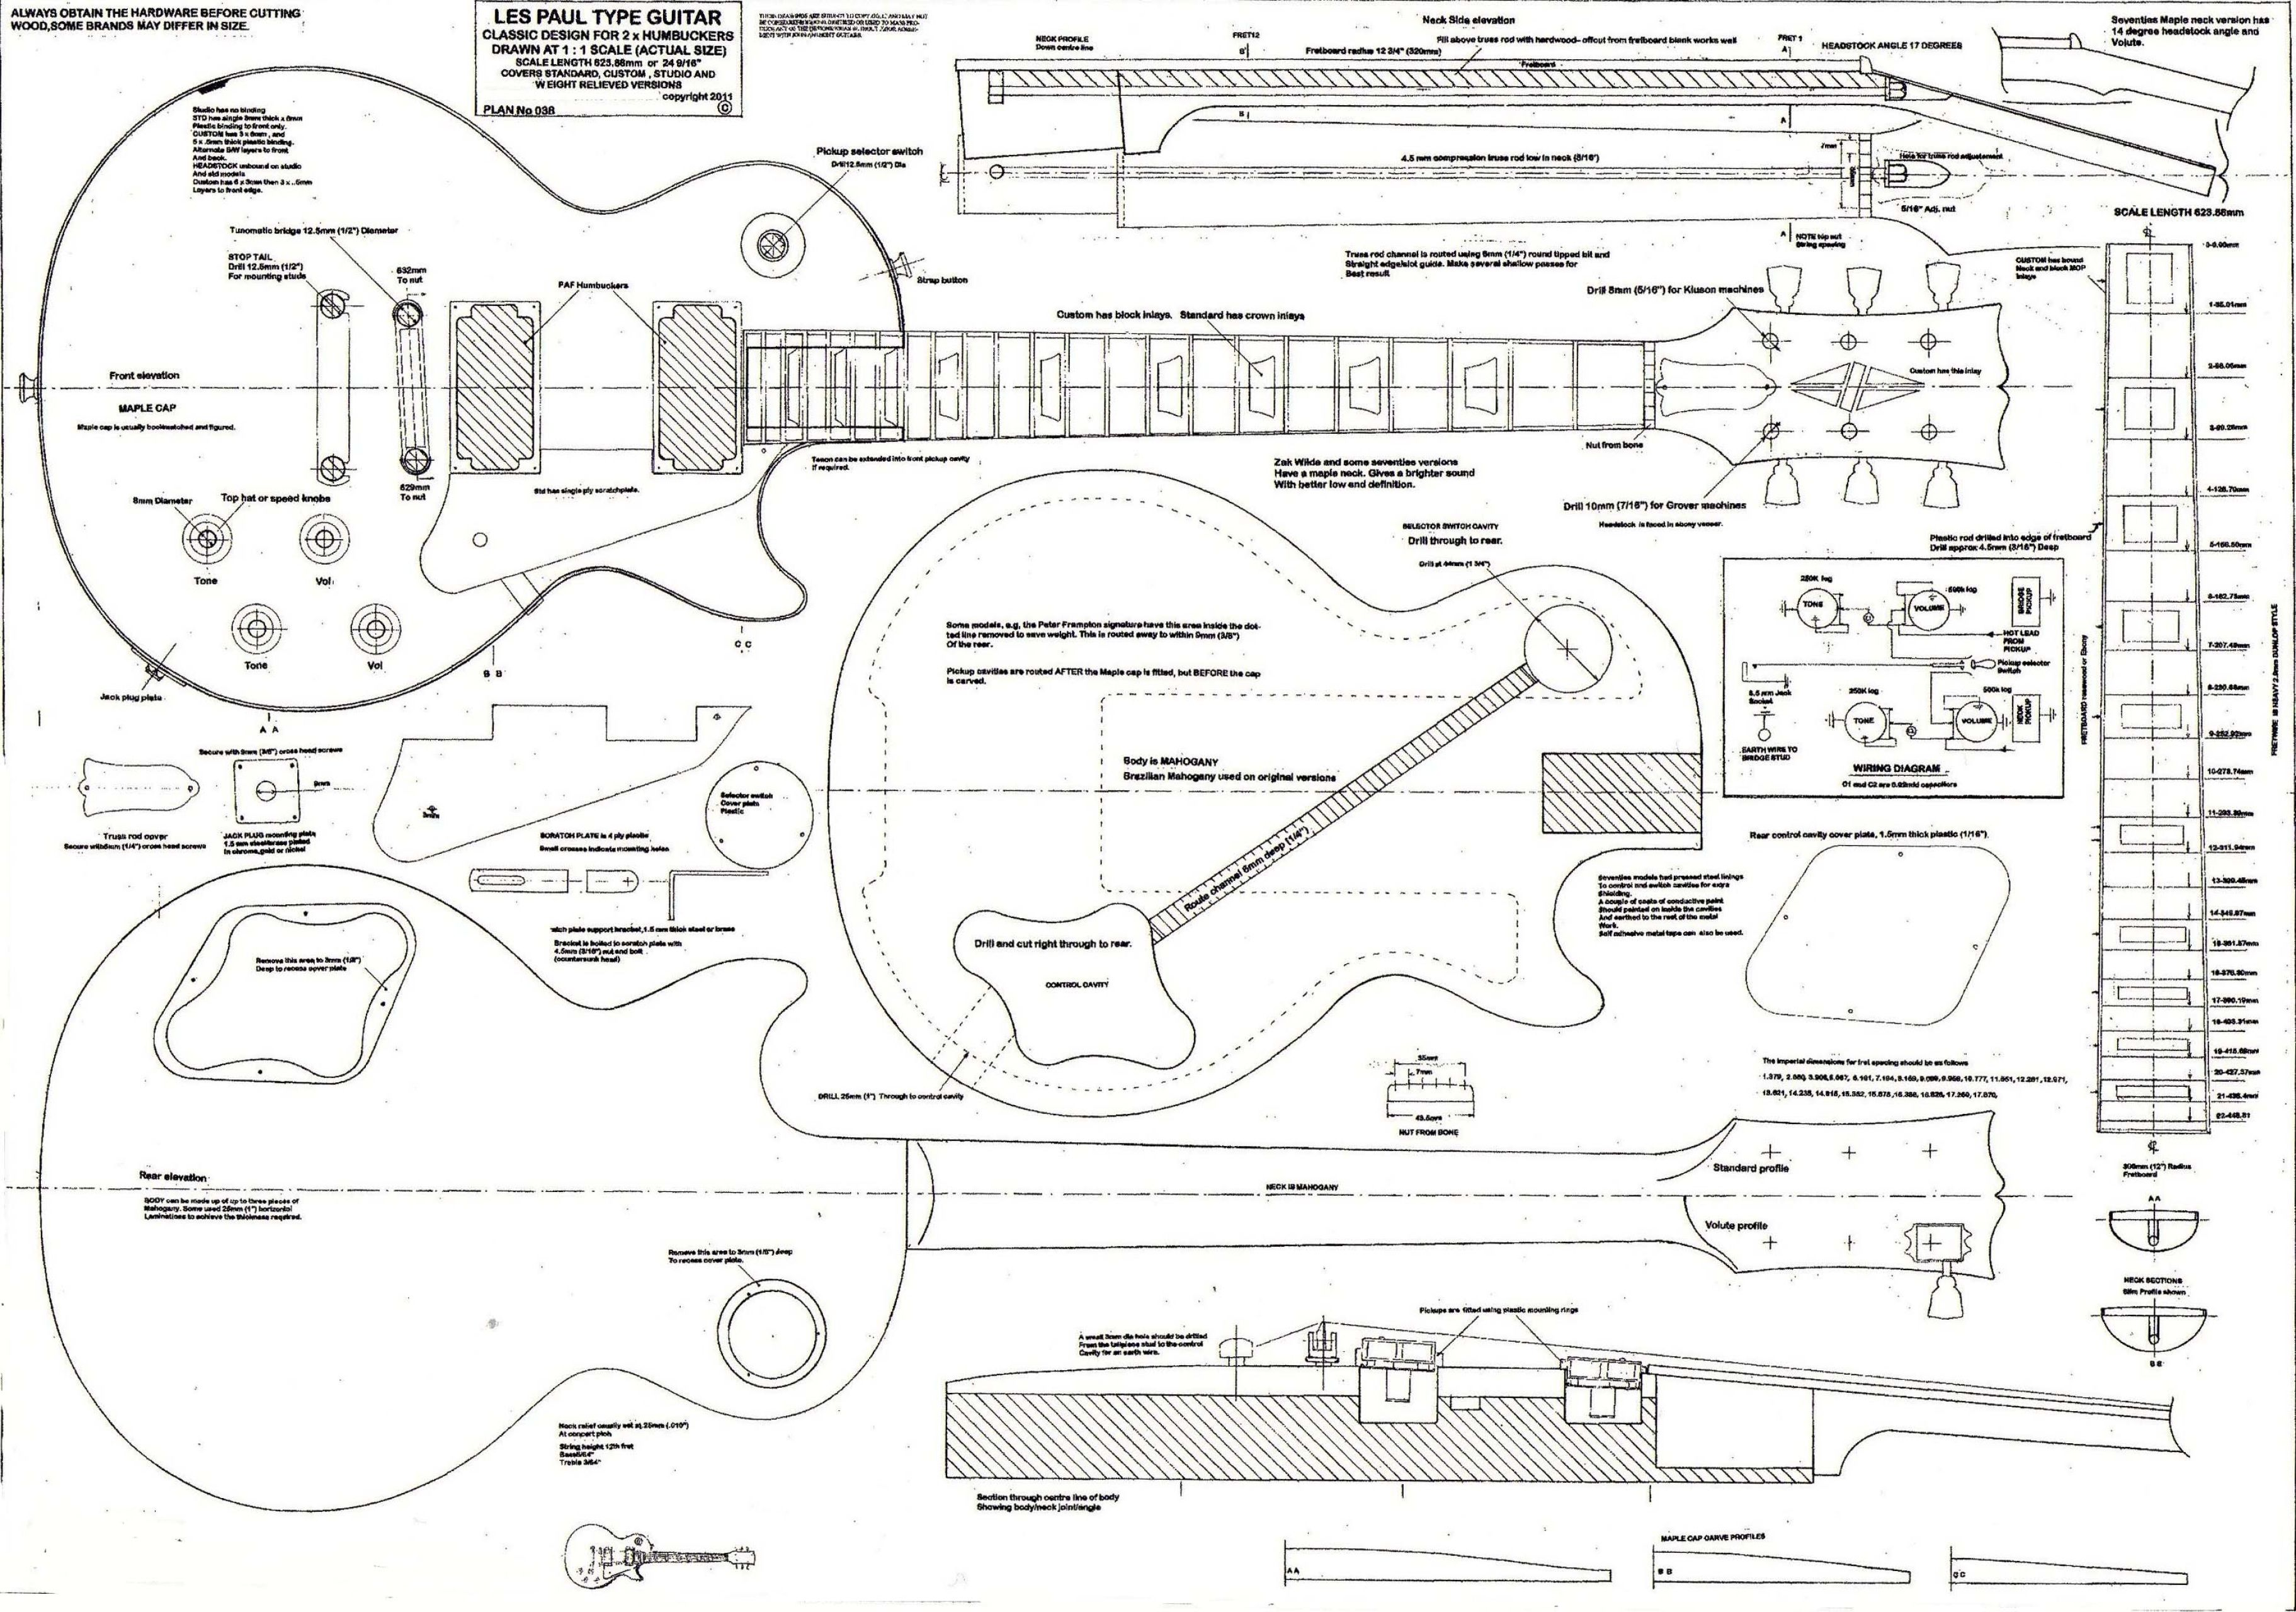 A3 Sized Print Of This Iconic Instrument Construction